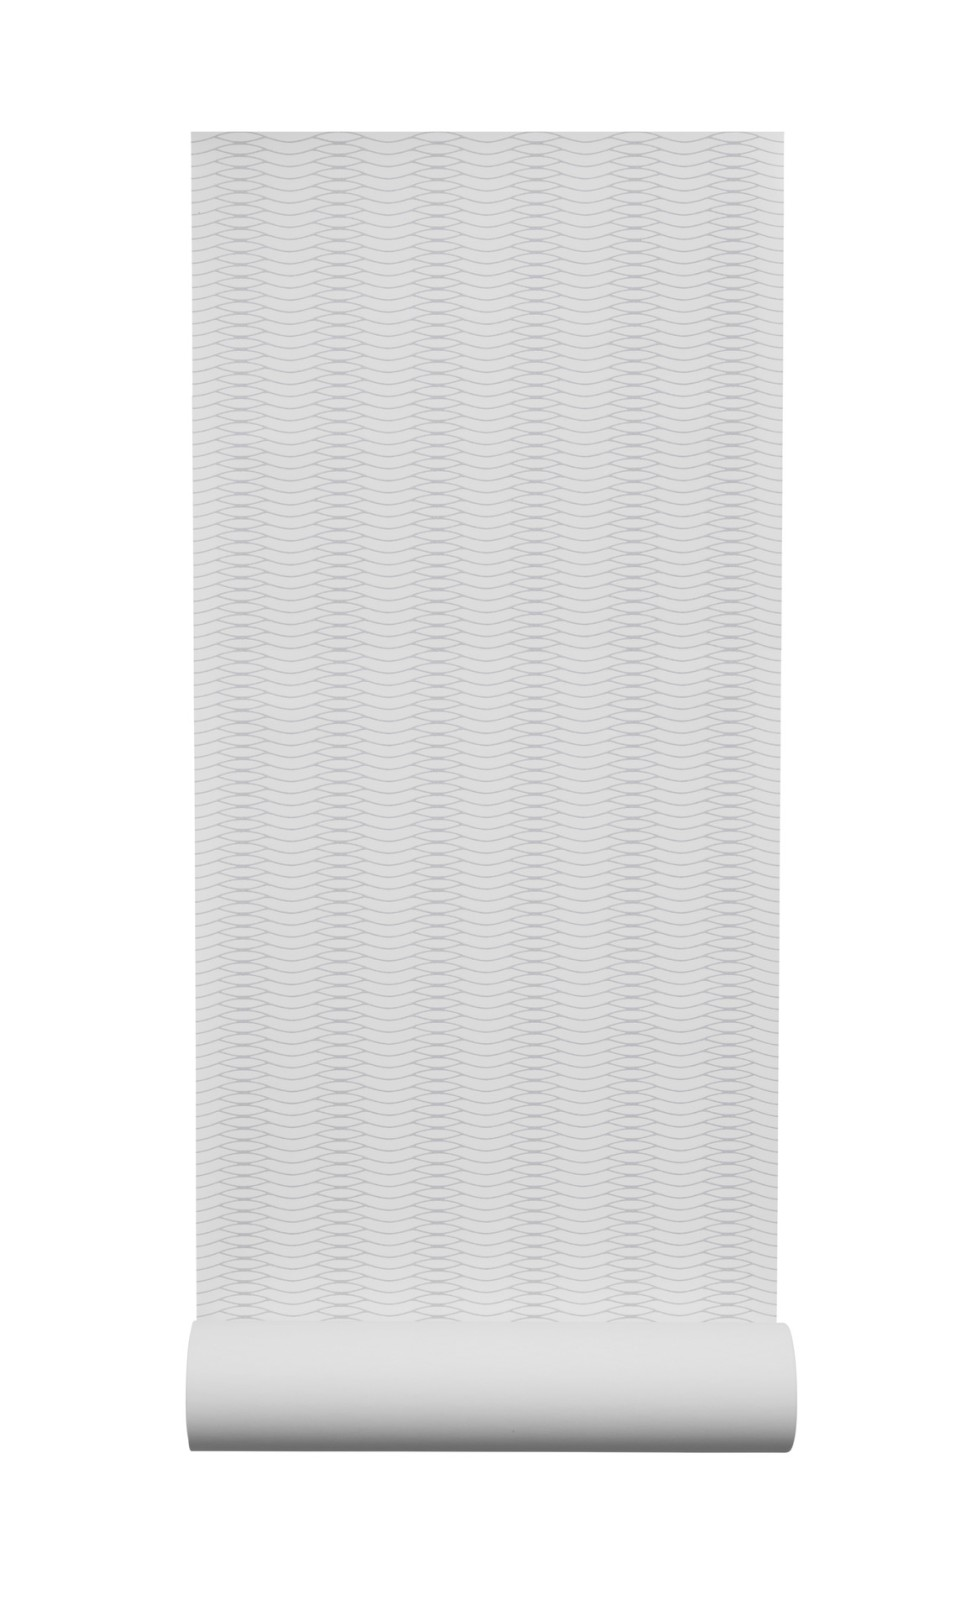 Liinus Wallpaper - Set of 6 White with Grey Lines